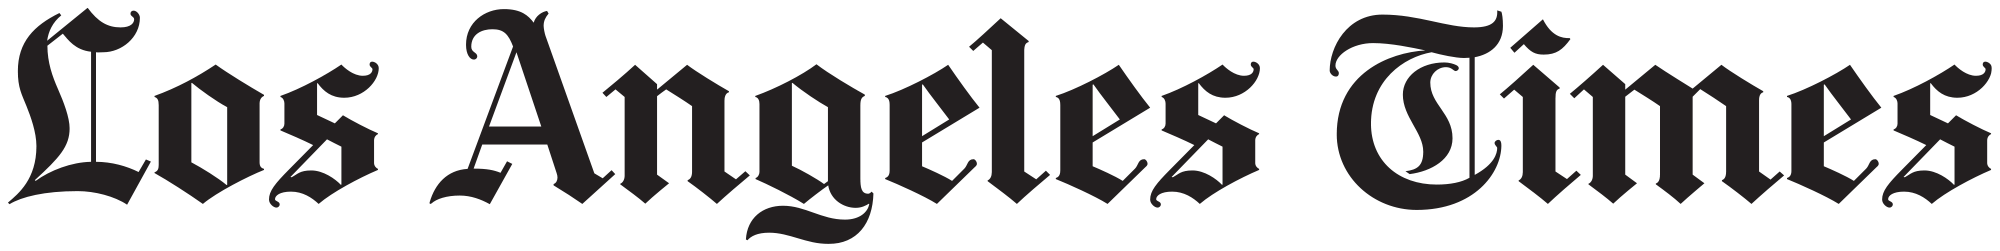 Time logo png. File los angeles times